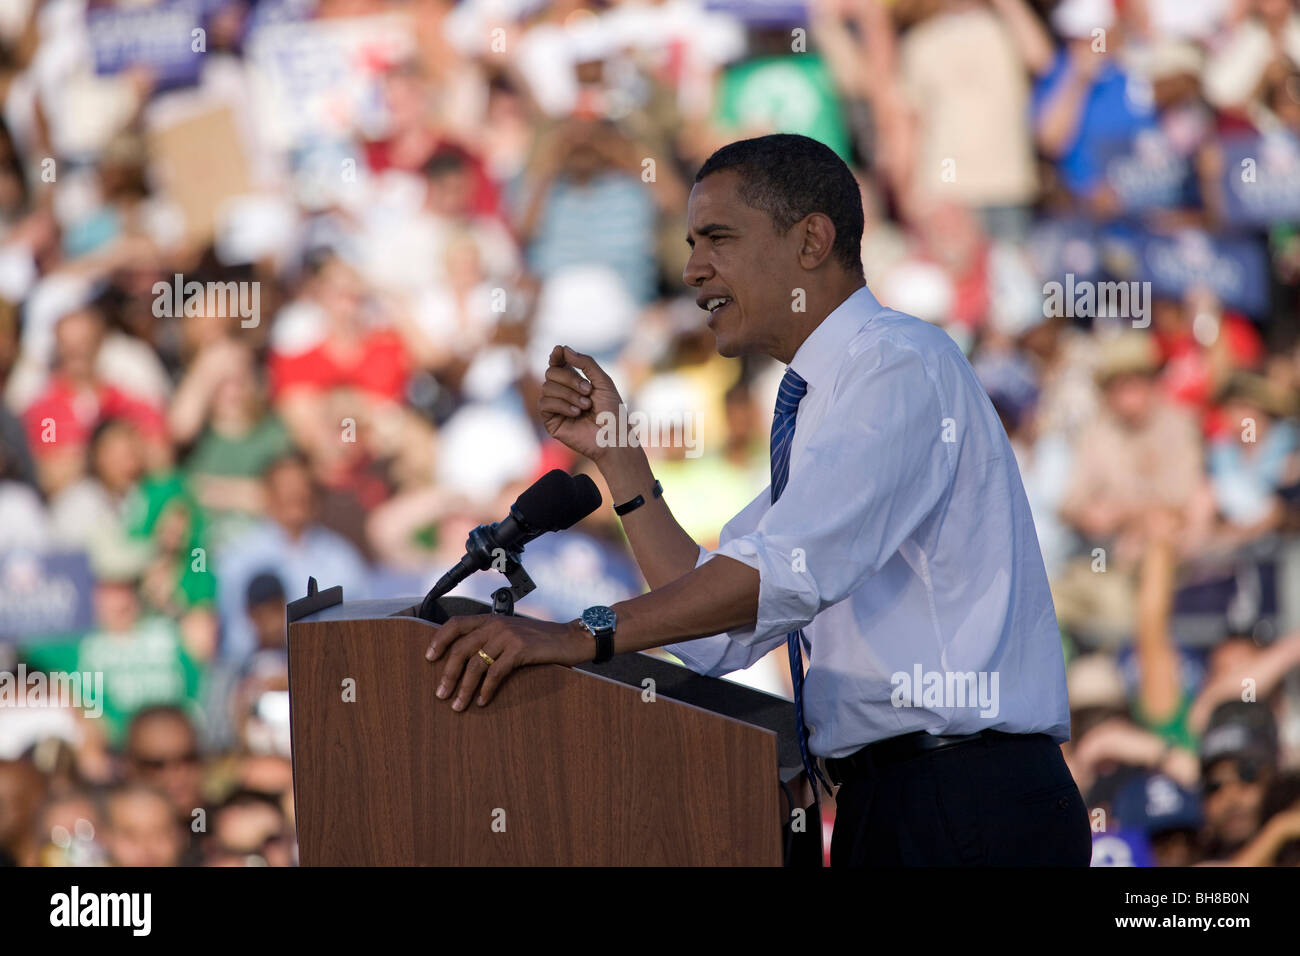 US Senator Barack Obama speaking from podium at Early Vote for Change Presidential rally October 25, 2008 at Bonanza Stock Photo